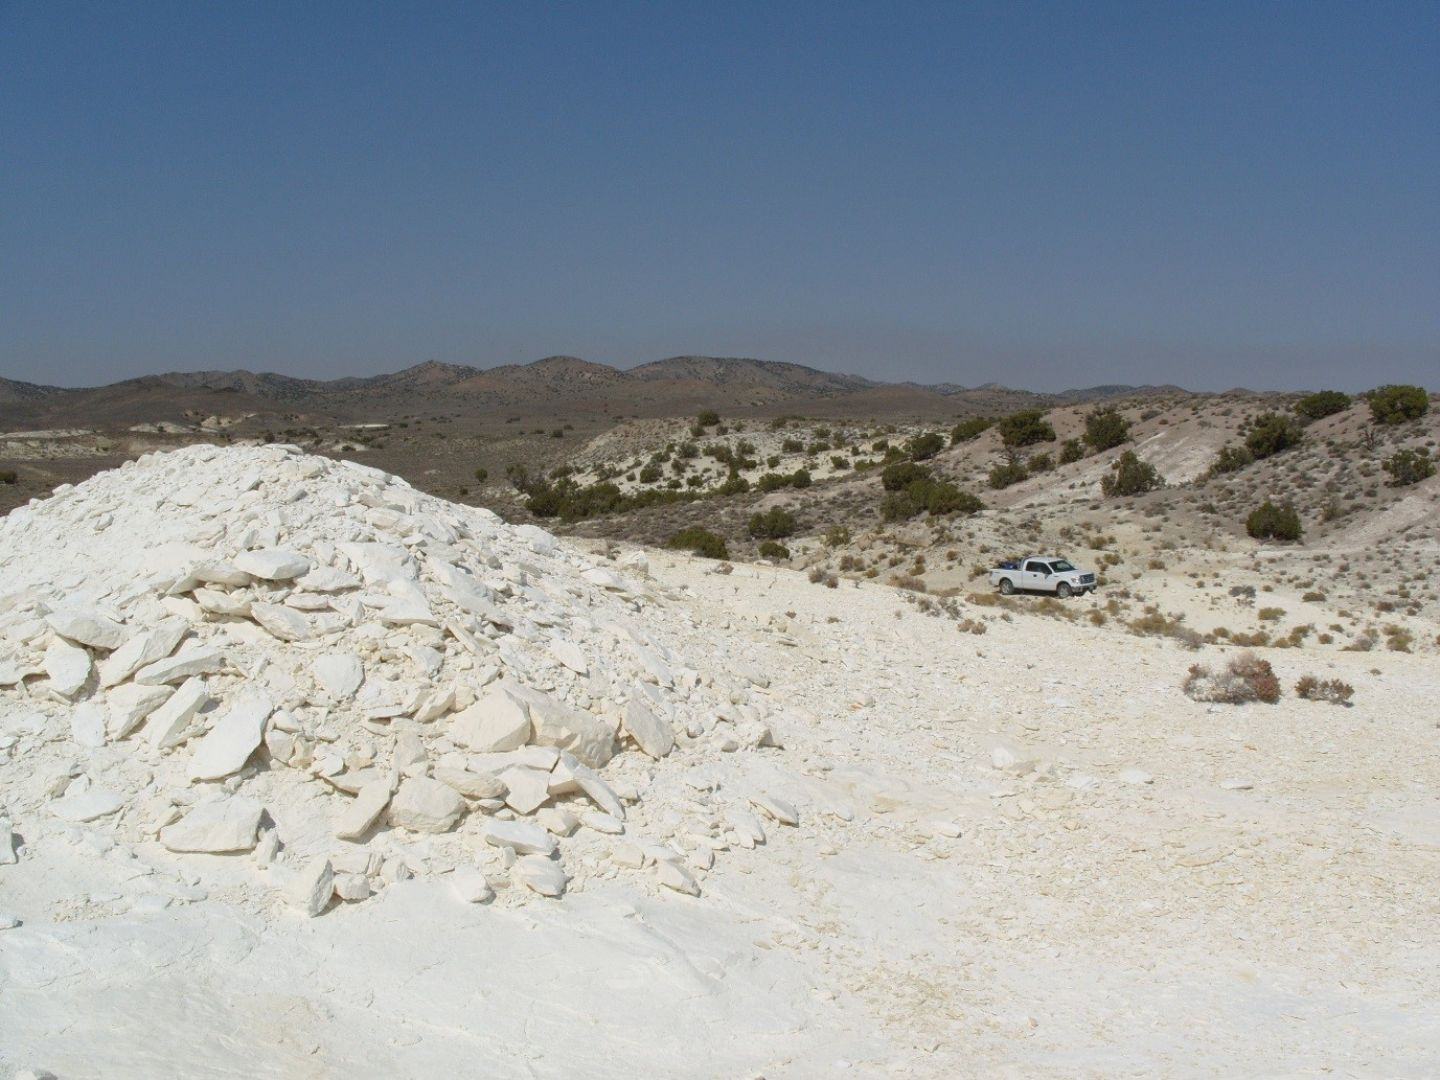 Extensive outcrops of diatomite forming current flat land surface and valley floor